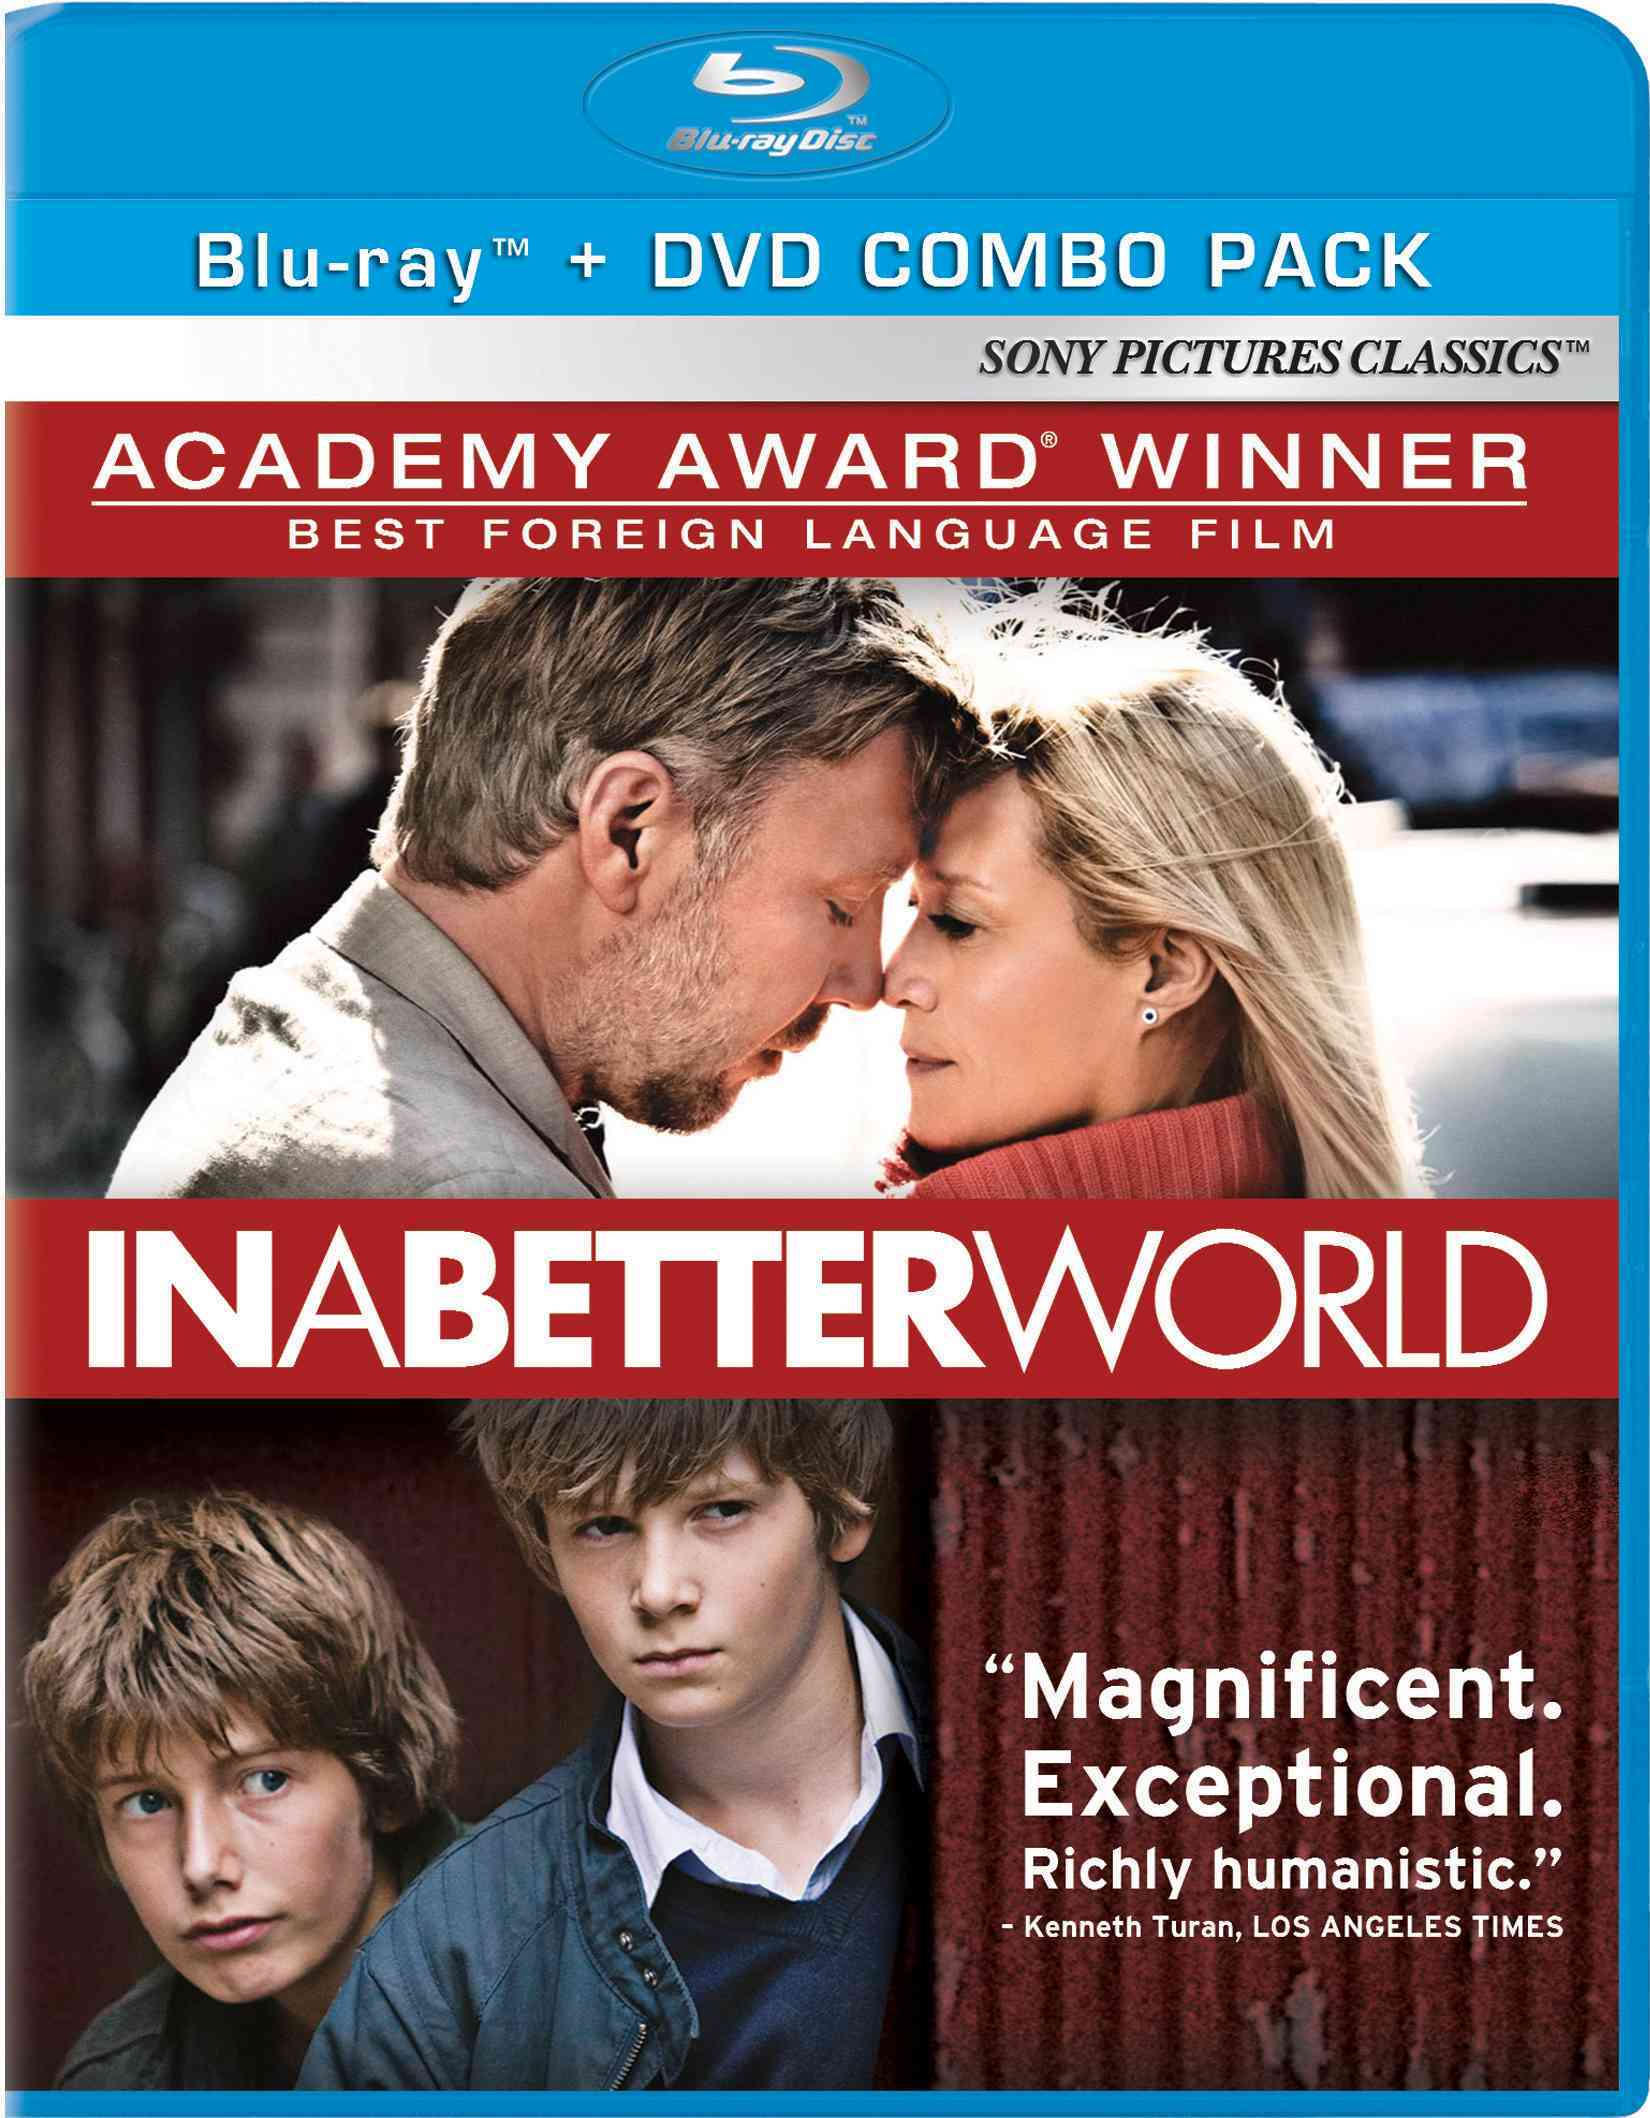 IN A BETTER WORLD BY PERSBRANDT,MIKAEL (Blu-Ray)